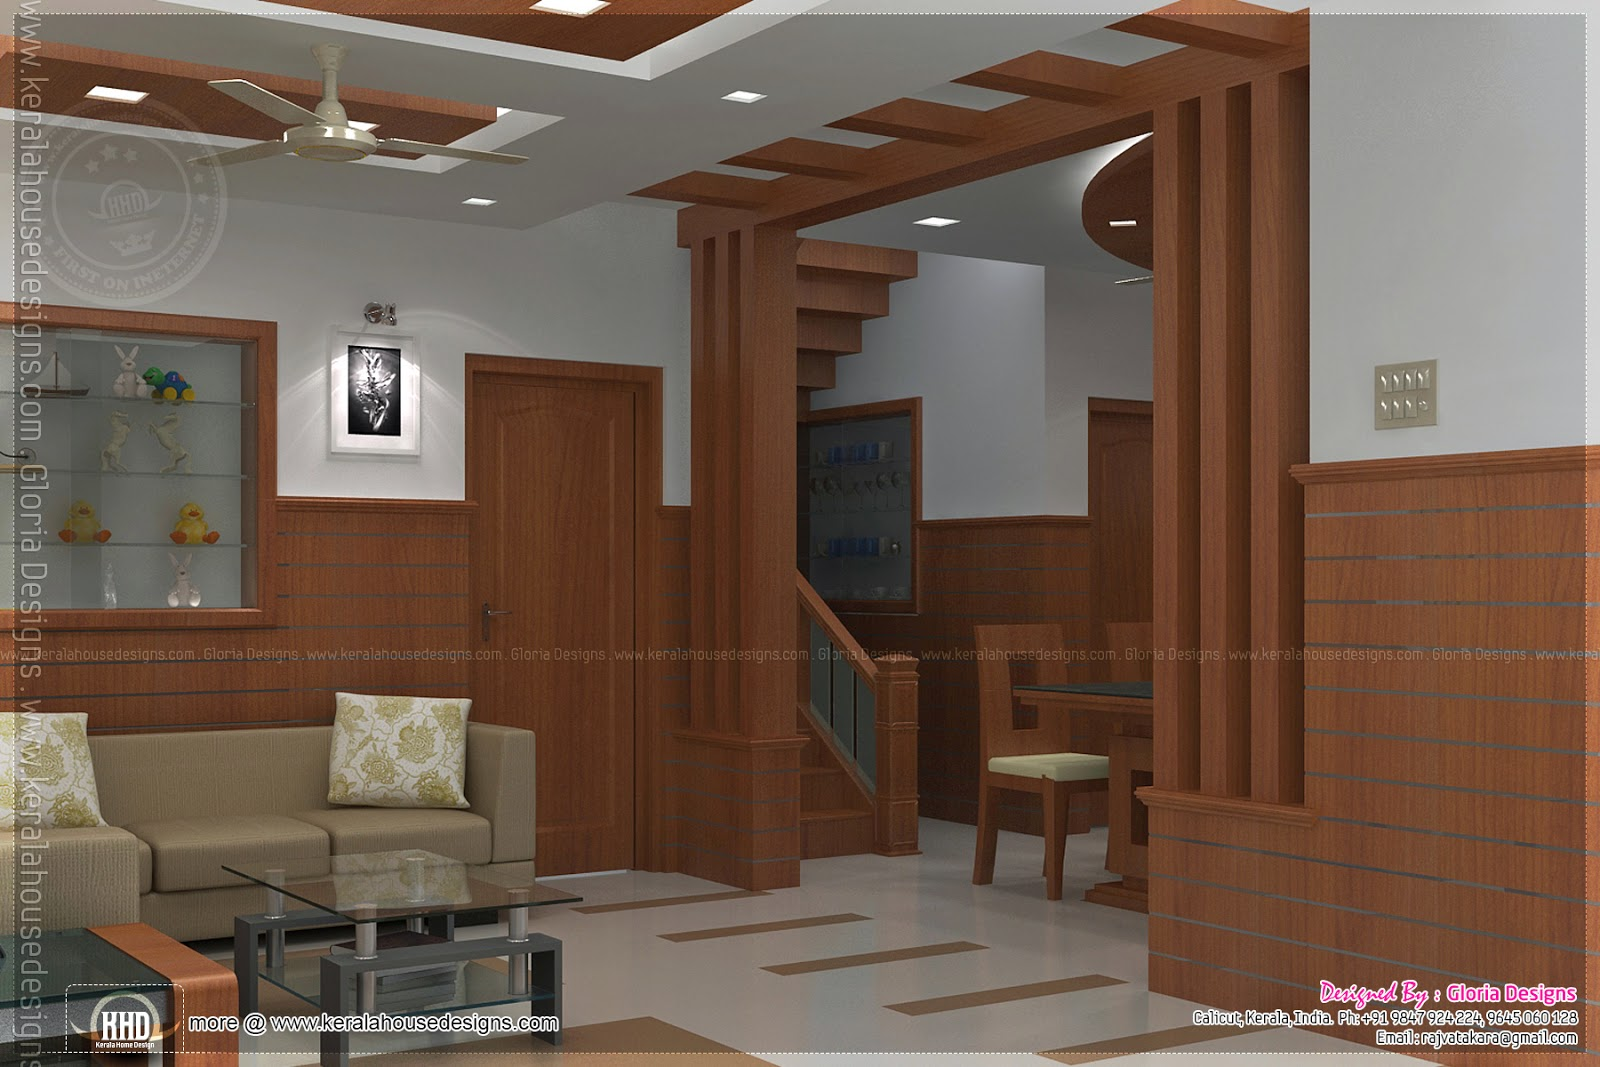 Front Elevation Pop Design : Home interior designs by gloria calicut kerala